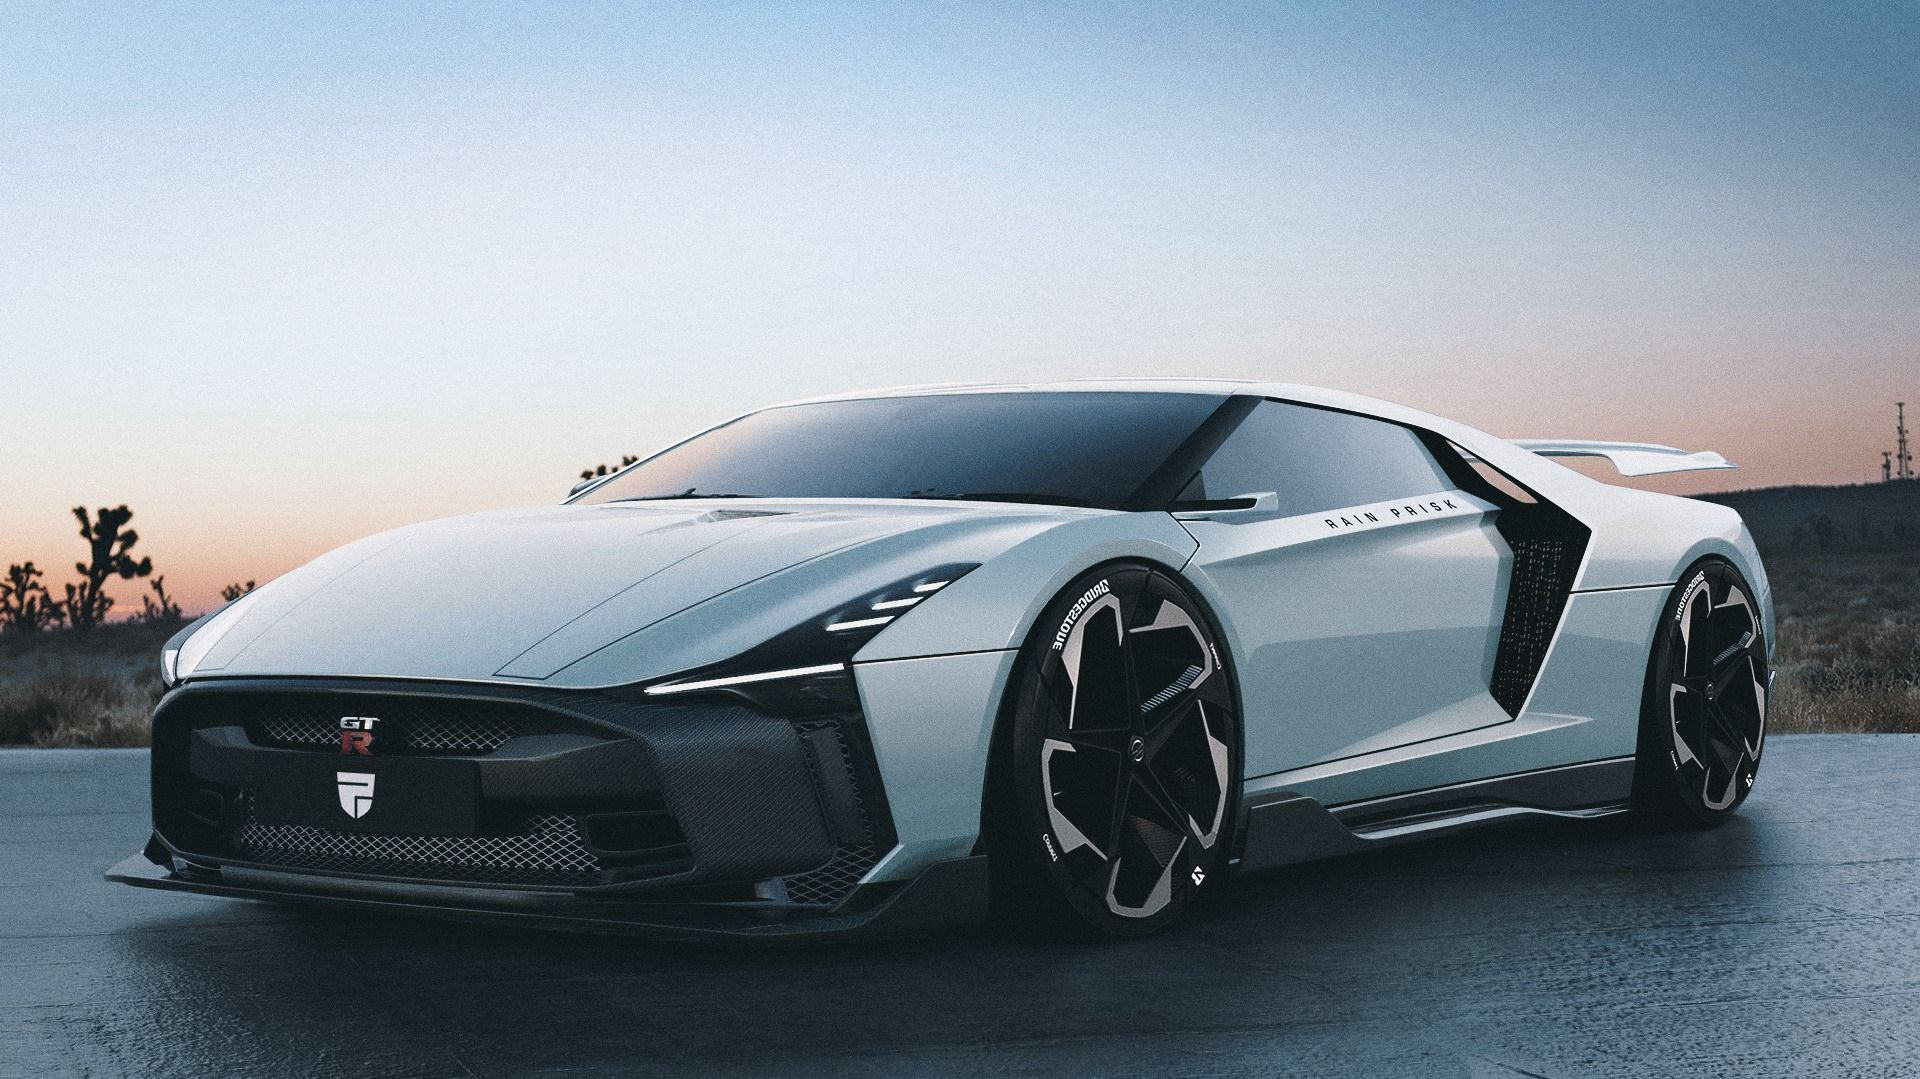 Rain Prisk Just Envisioned The Nissan Gt R50 As A Mid Engine Car And It S Perfect Top Speed Nissan Gt Super Cars Nissan Gtr